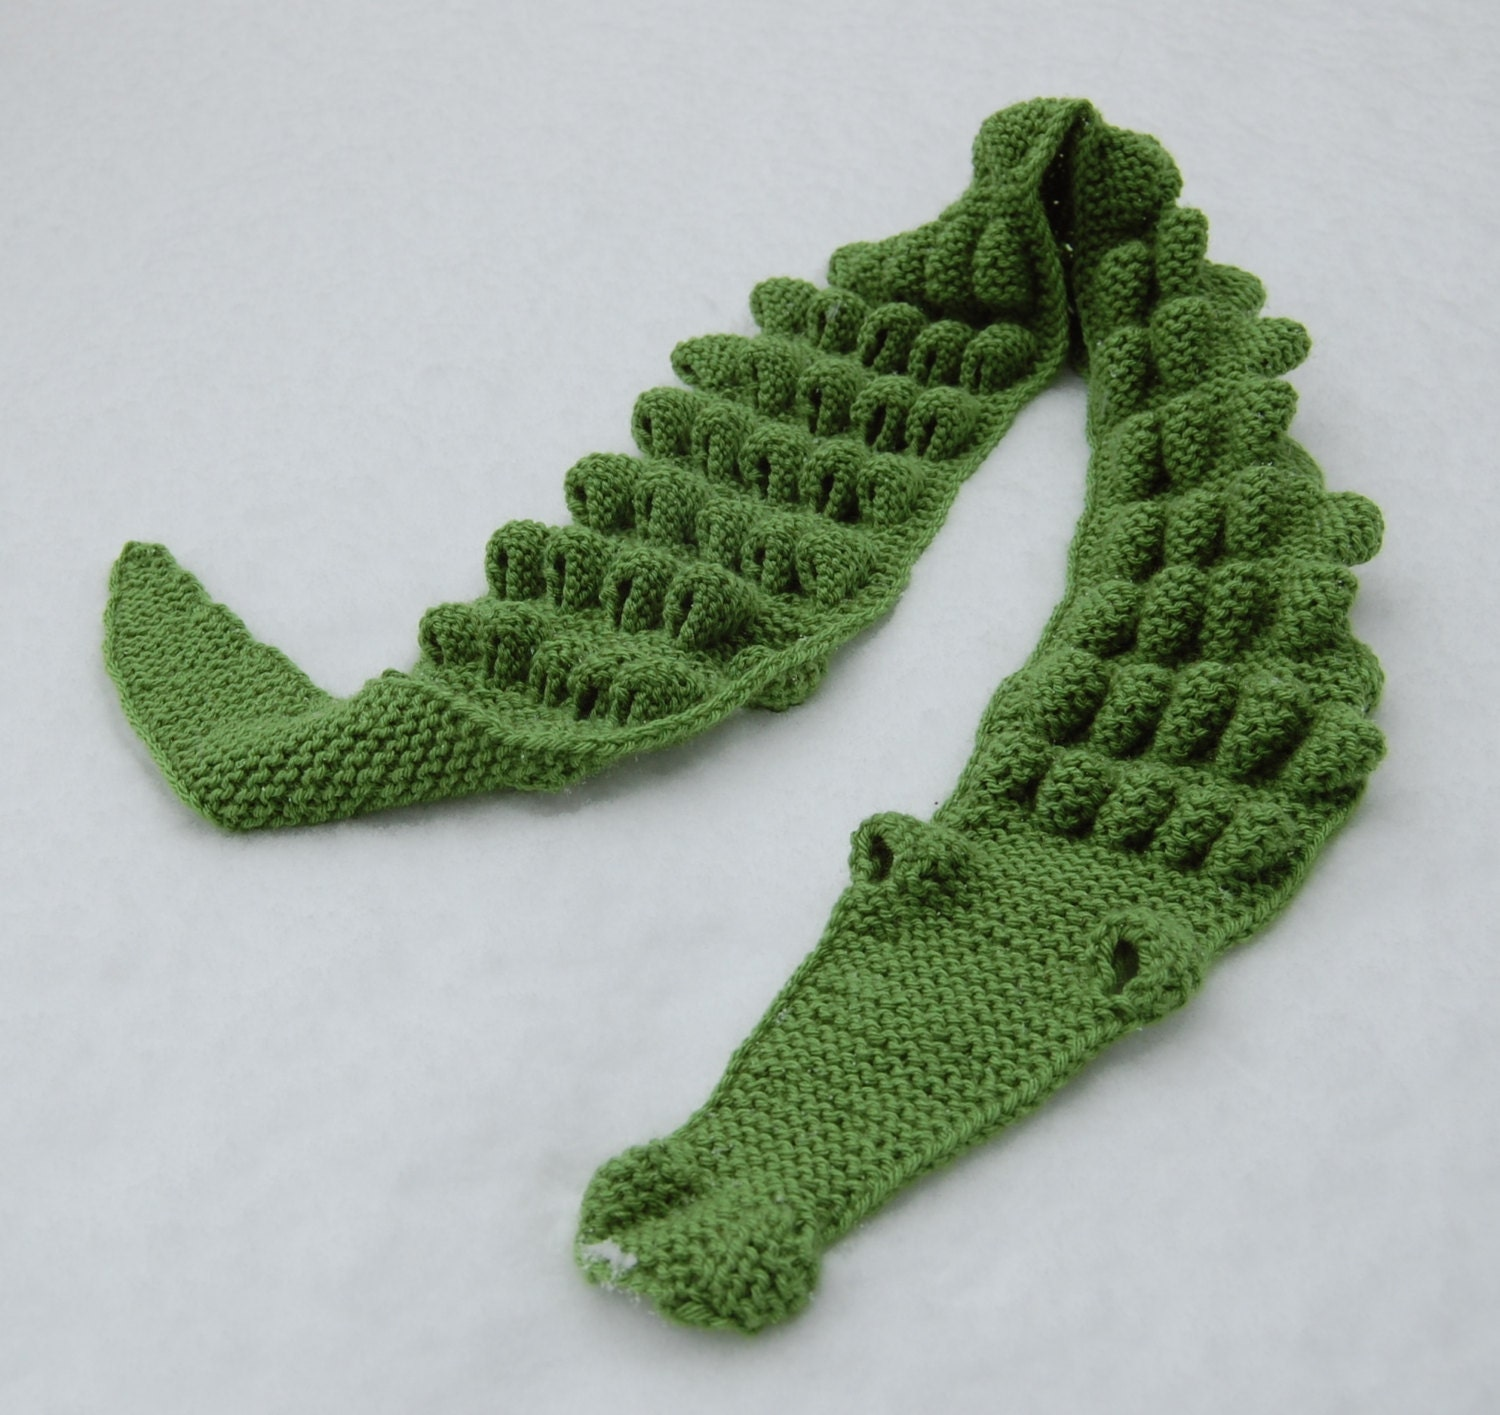 Free Knitting Pattern For Alligator Scarf : Hand Knitted Crocodile Scarf